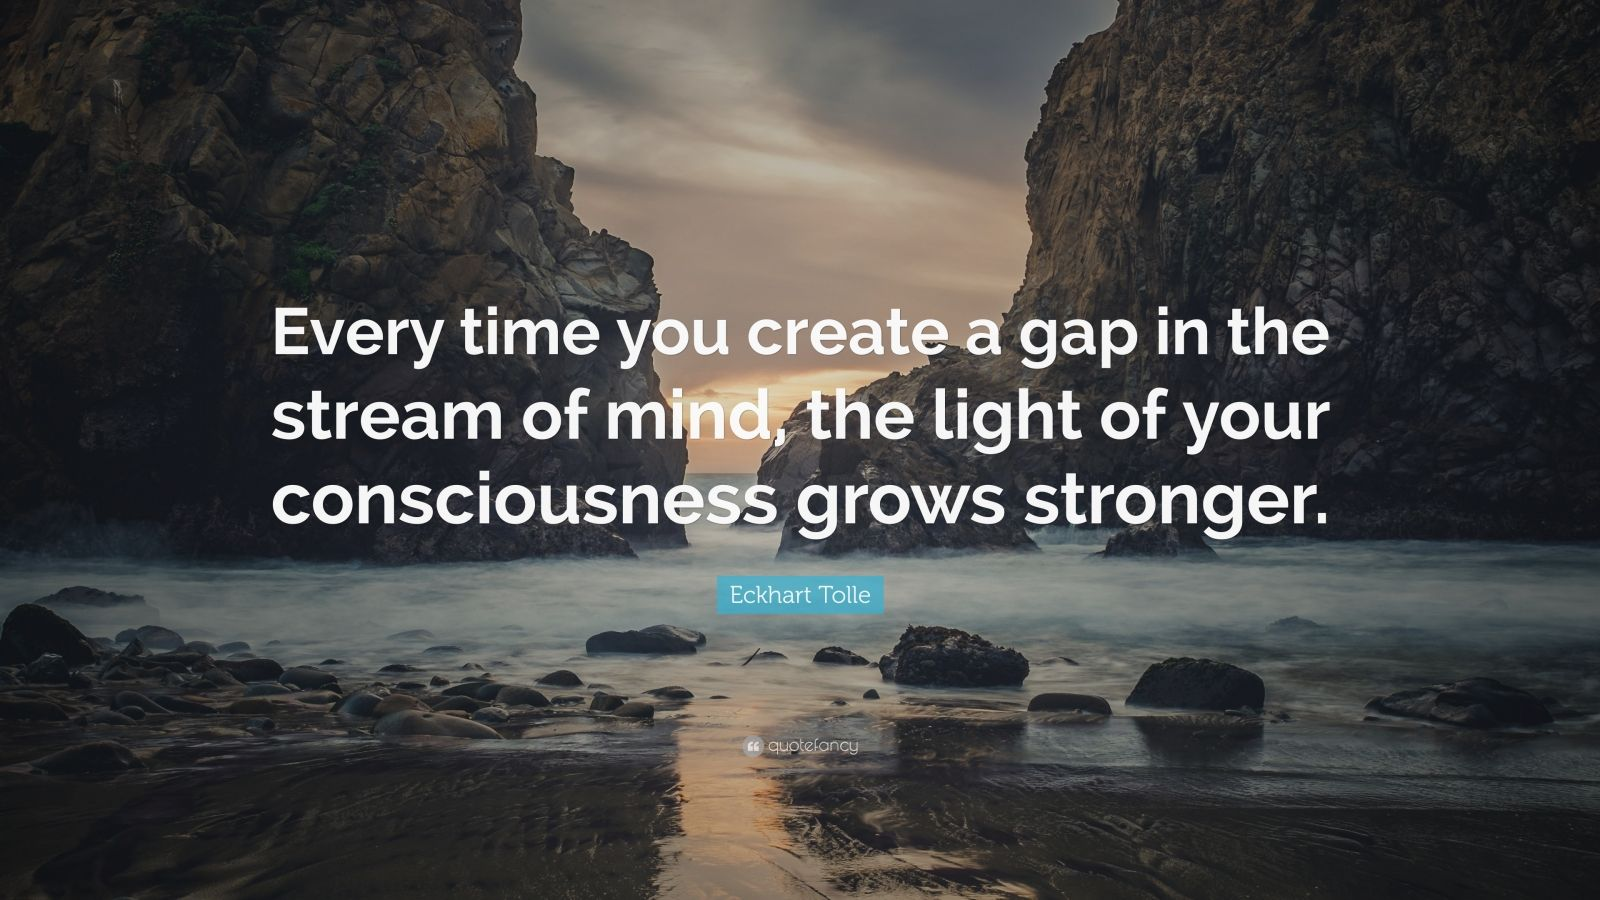 """Eckhart Tolle Quote: """"Every time you create a gap in the stream of mind, the light of your consciousness grows stronger."""""""